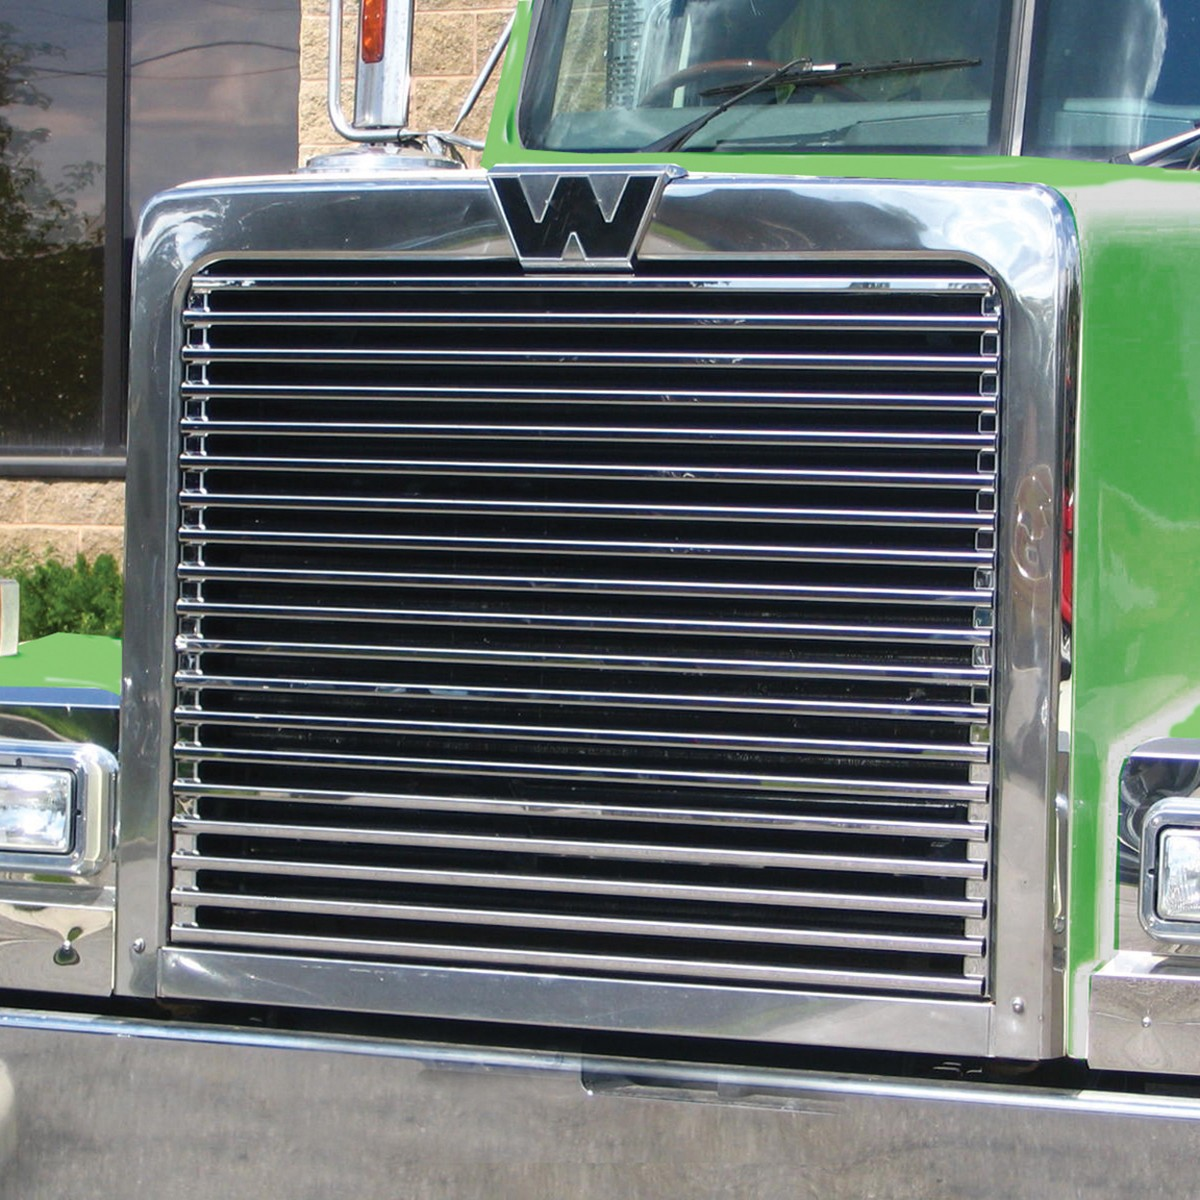 Ws 4900 Ex Horizontal Grill Kit Grill Surrounds Exterior